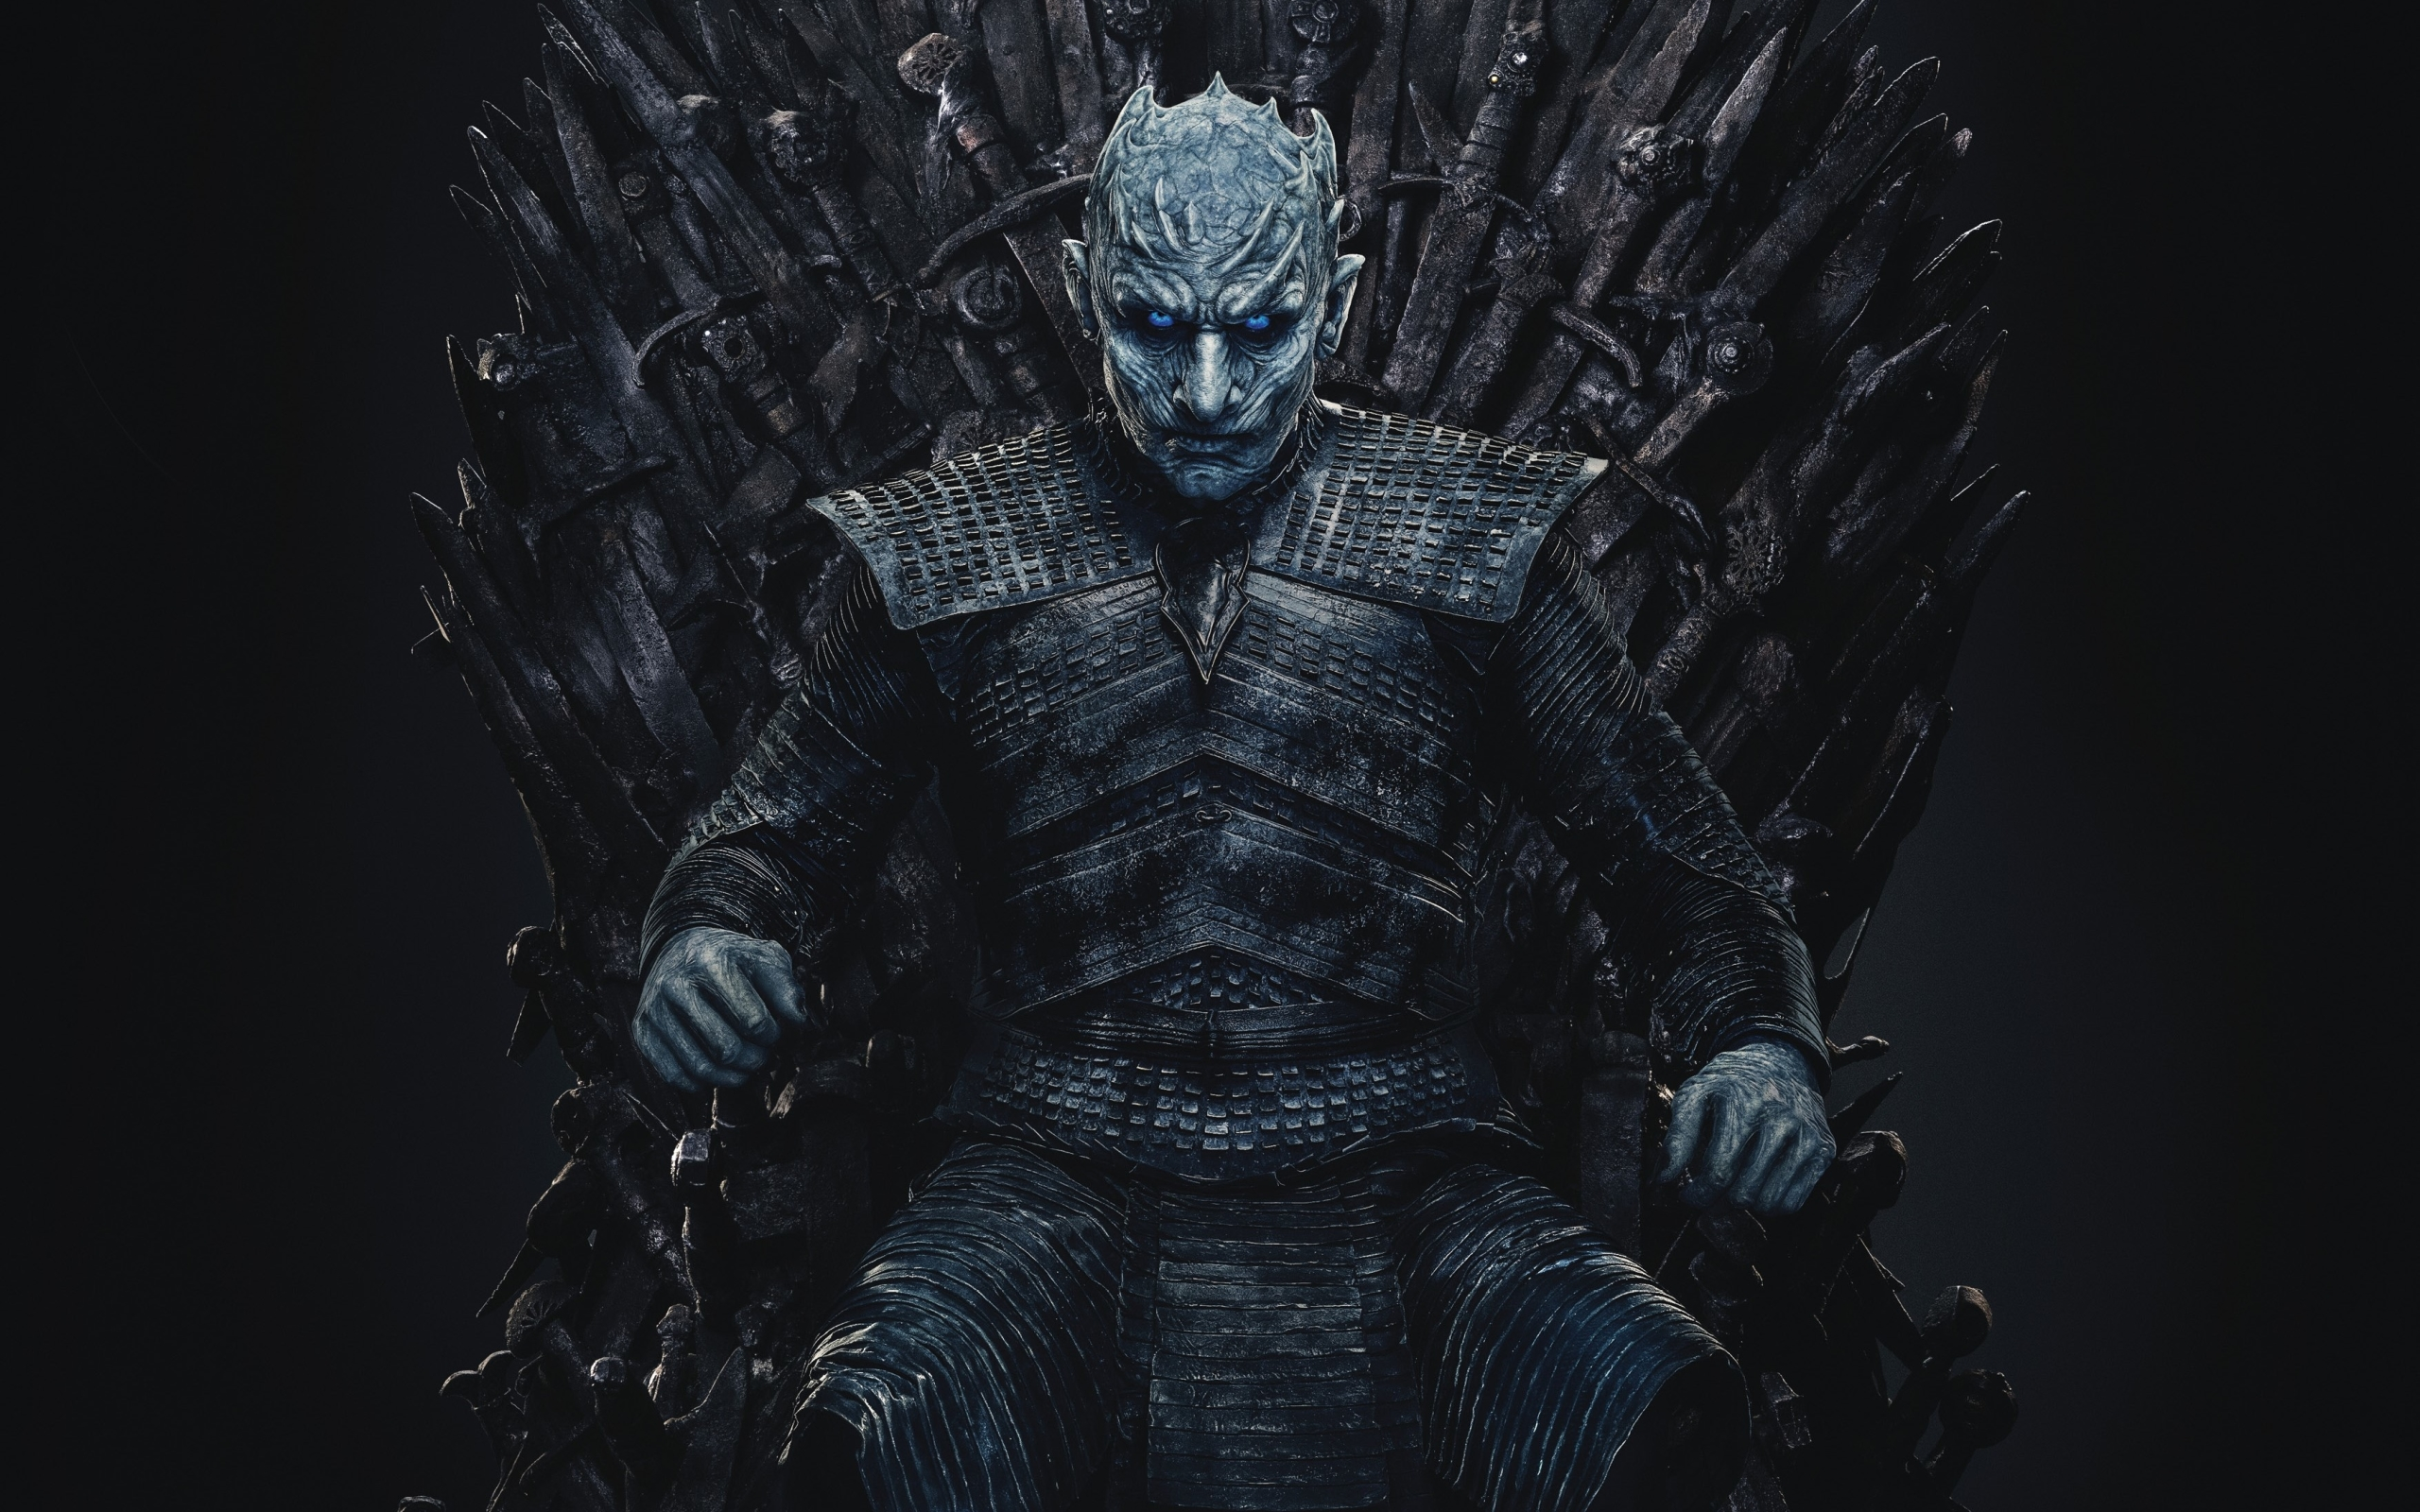 Wallpaper Of Night King Game Of Thrones Throne Background Hd Image